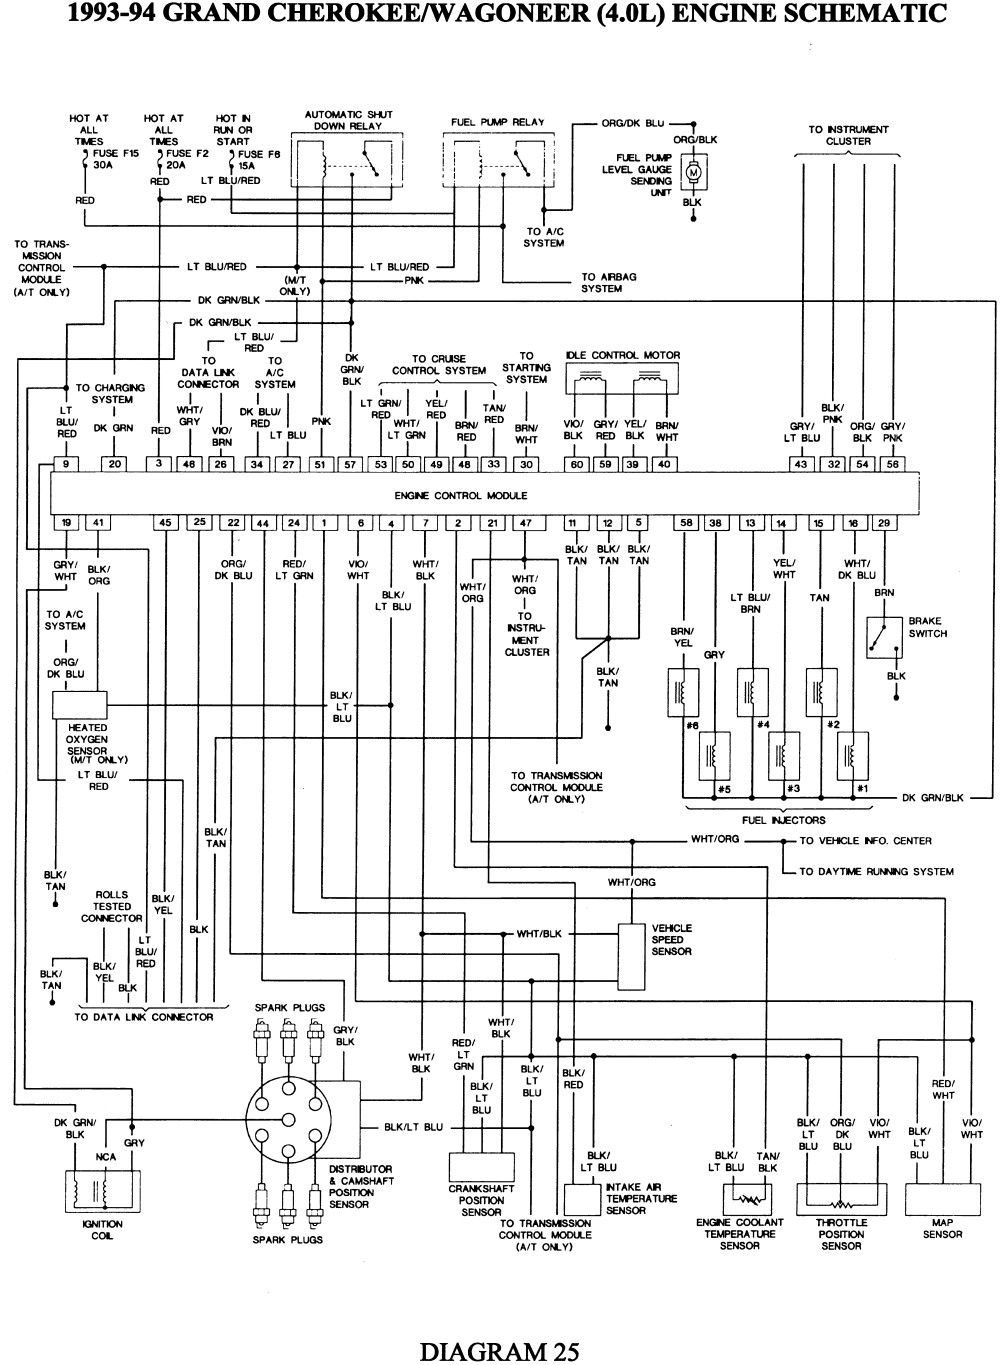 2001 Jeep Cherokee Wiring Diagram Electrical Schematics 91 Wrangler 5a9dfe6bc252e On Tail Light Everything You Need To Blower Fan